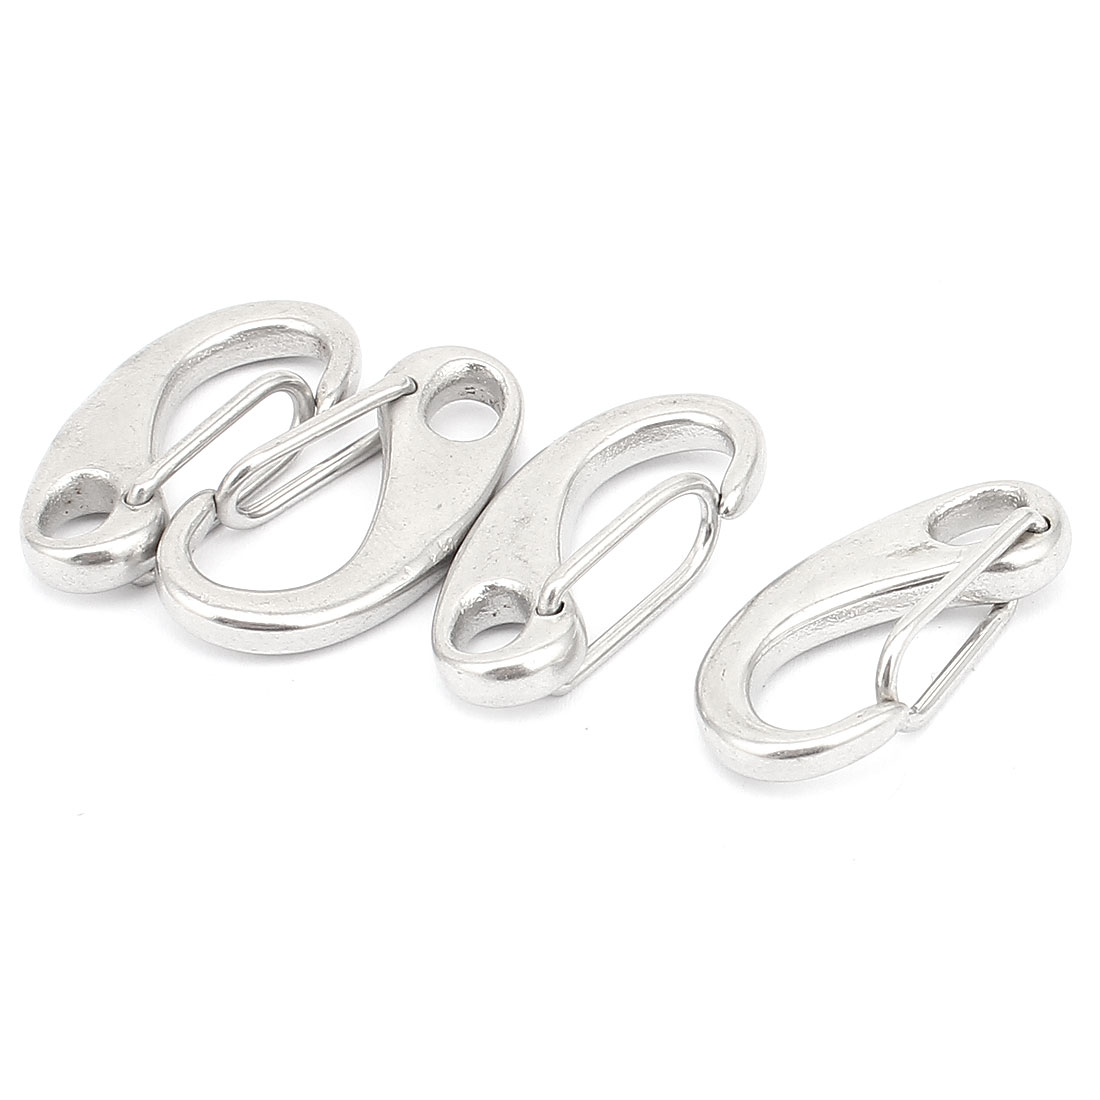 Stainless steel egg Quick Link Carabiner Snap Hook Clip 30mm Lenght 4pcs